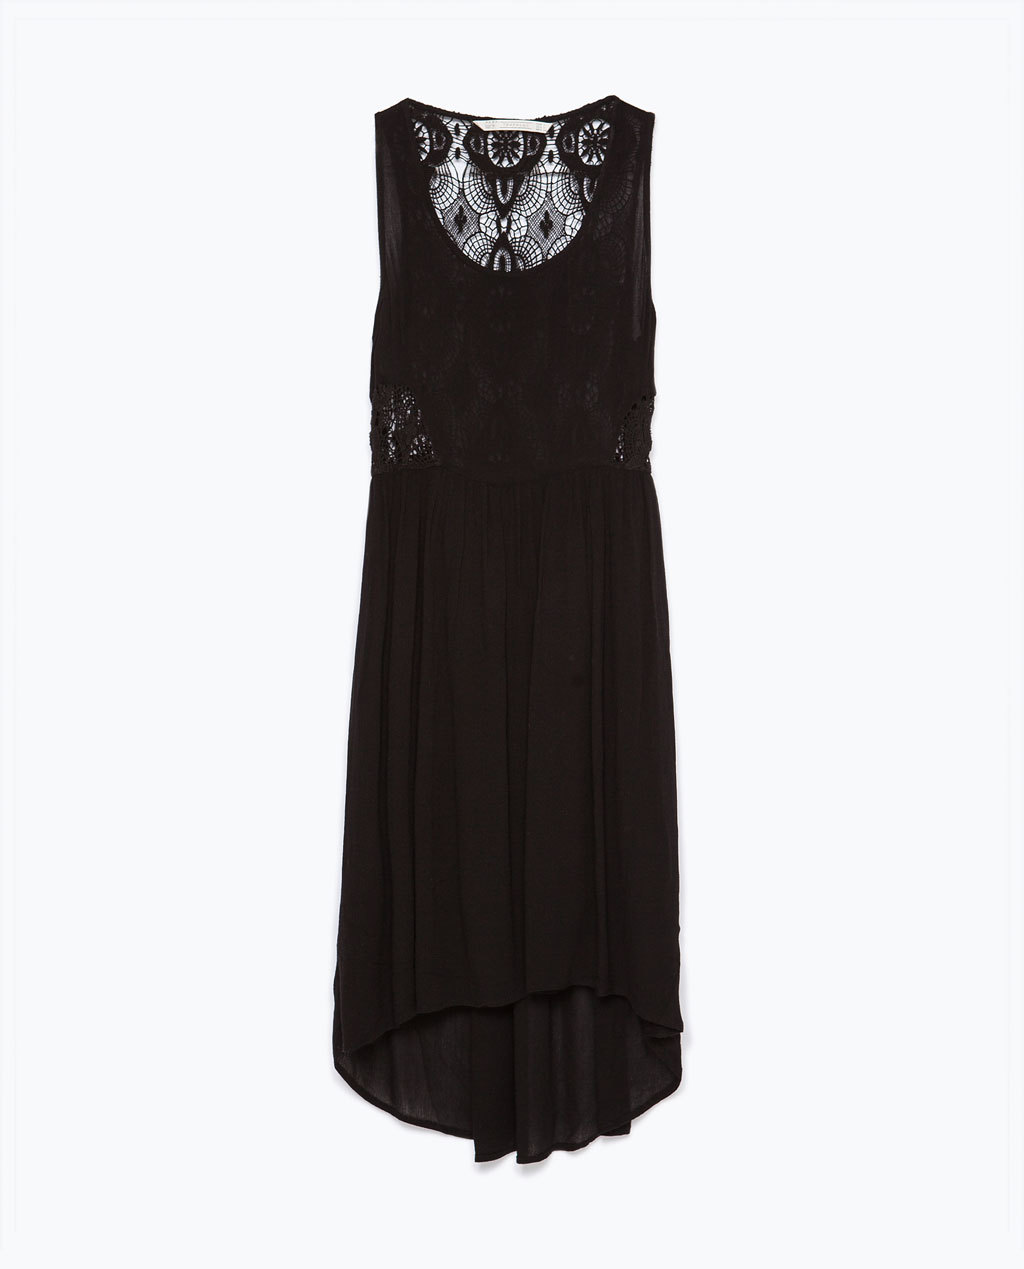 Crochet Back Dress - pattern: plain; sleeve style: sleeveless; style: vest; predominant colour: black; occasions: casual; length: on the knee; fit: soft a-line; neckline: scoop; fibres: viscose/rayon - 100%; hip detail: soft pleats at hip/draping at hip/flared at hip; sleeve length: sleeveless; texture group: cotton feel fabrics; pattern type: fabric; pattern size: light/subtle; embellishment: lace; season: s/s 2015; wardrobe: highlight